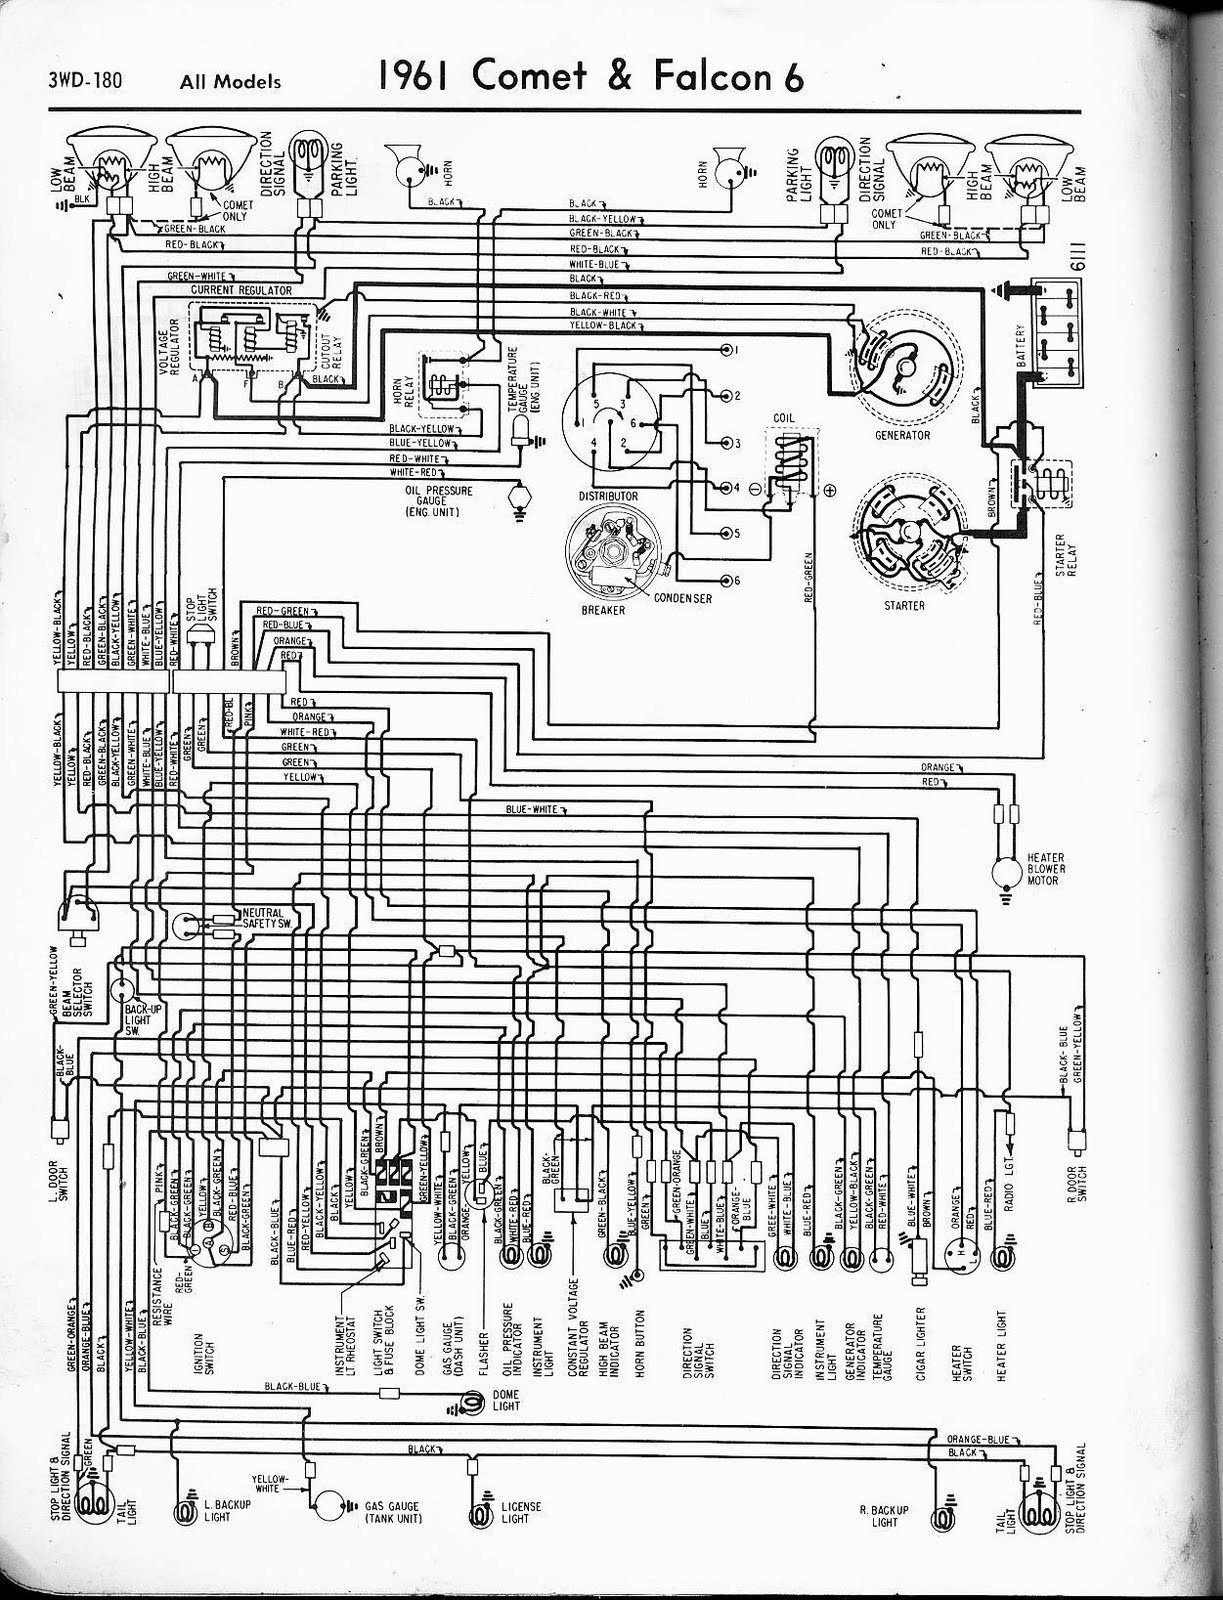 DIAGRAM] Au Ford Falcon Wiring Diagram Free Download FULL Version HD  Quality Free Download - WIRINGENCLOSURE.DRIVEFERMIERLYONNAIS.FRwiringenclosure.drivefermierlyonnais.fr